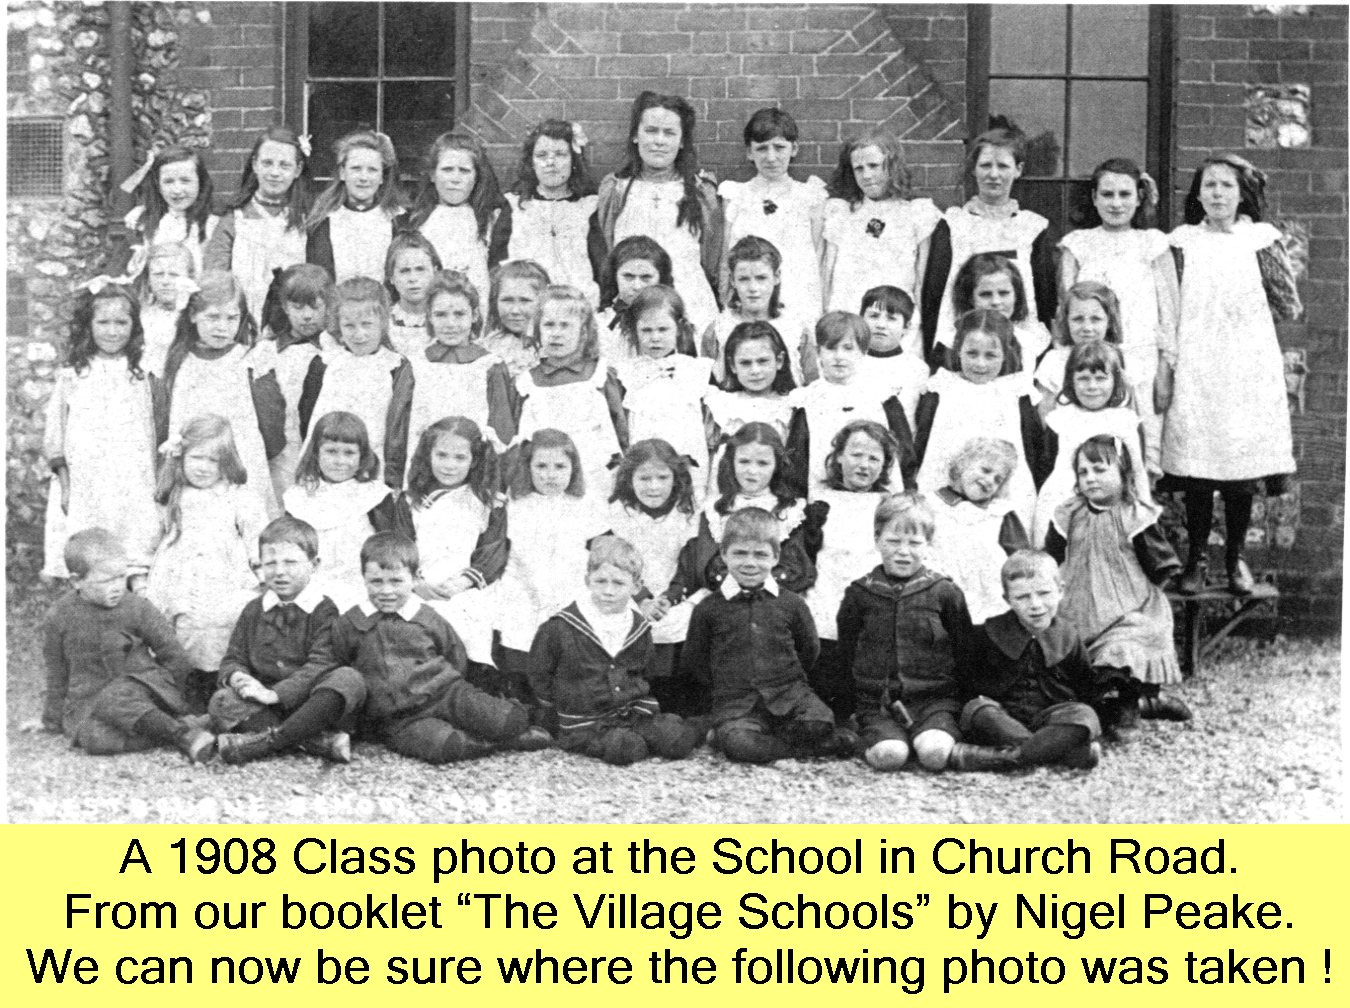 WESTBOURNE HISTORY PHOTO, SCHOOL, CHURCH ROAD, CLASS, 1908, VILLAGE SCHOOLS